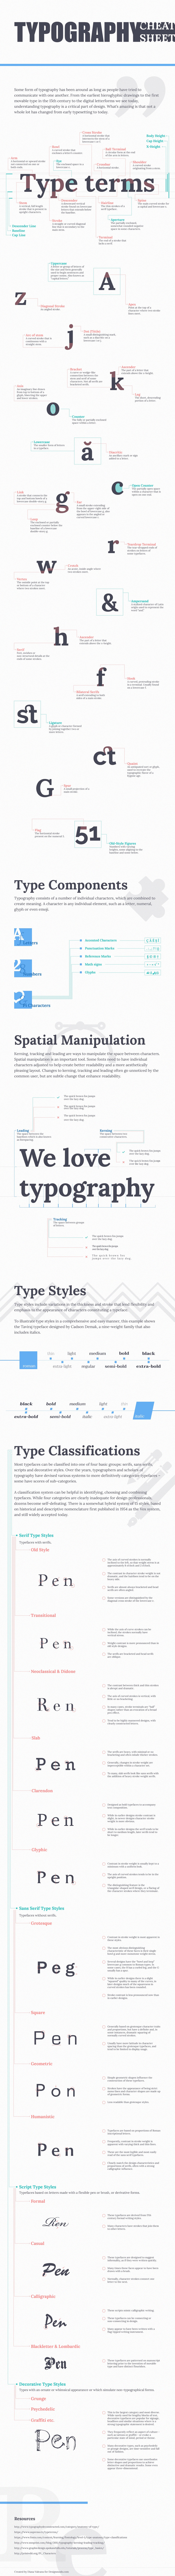 Typography Cheat Sheet [Infographic]